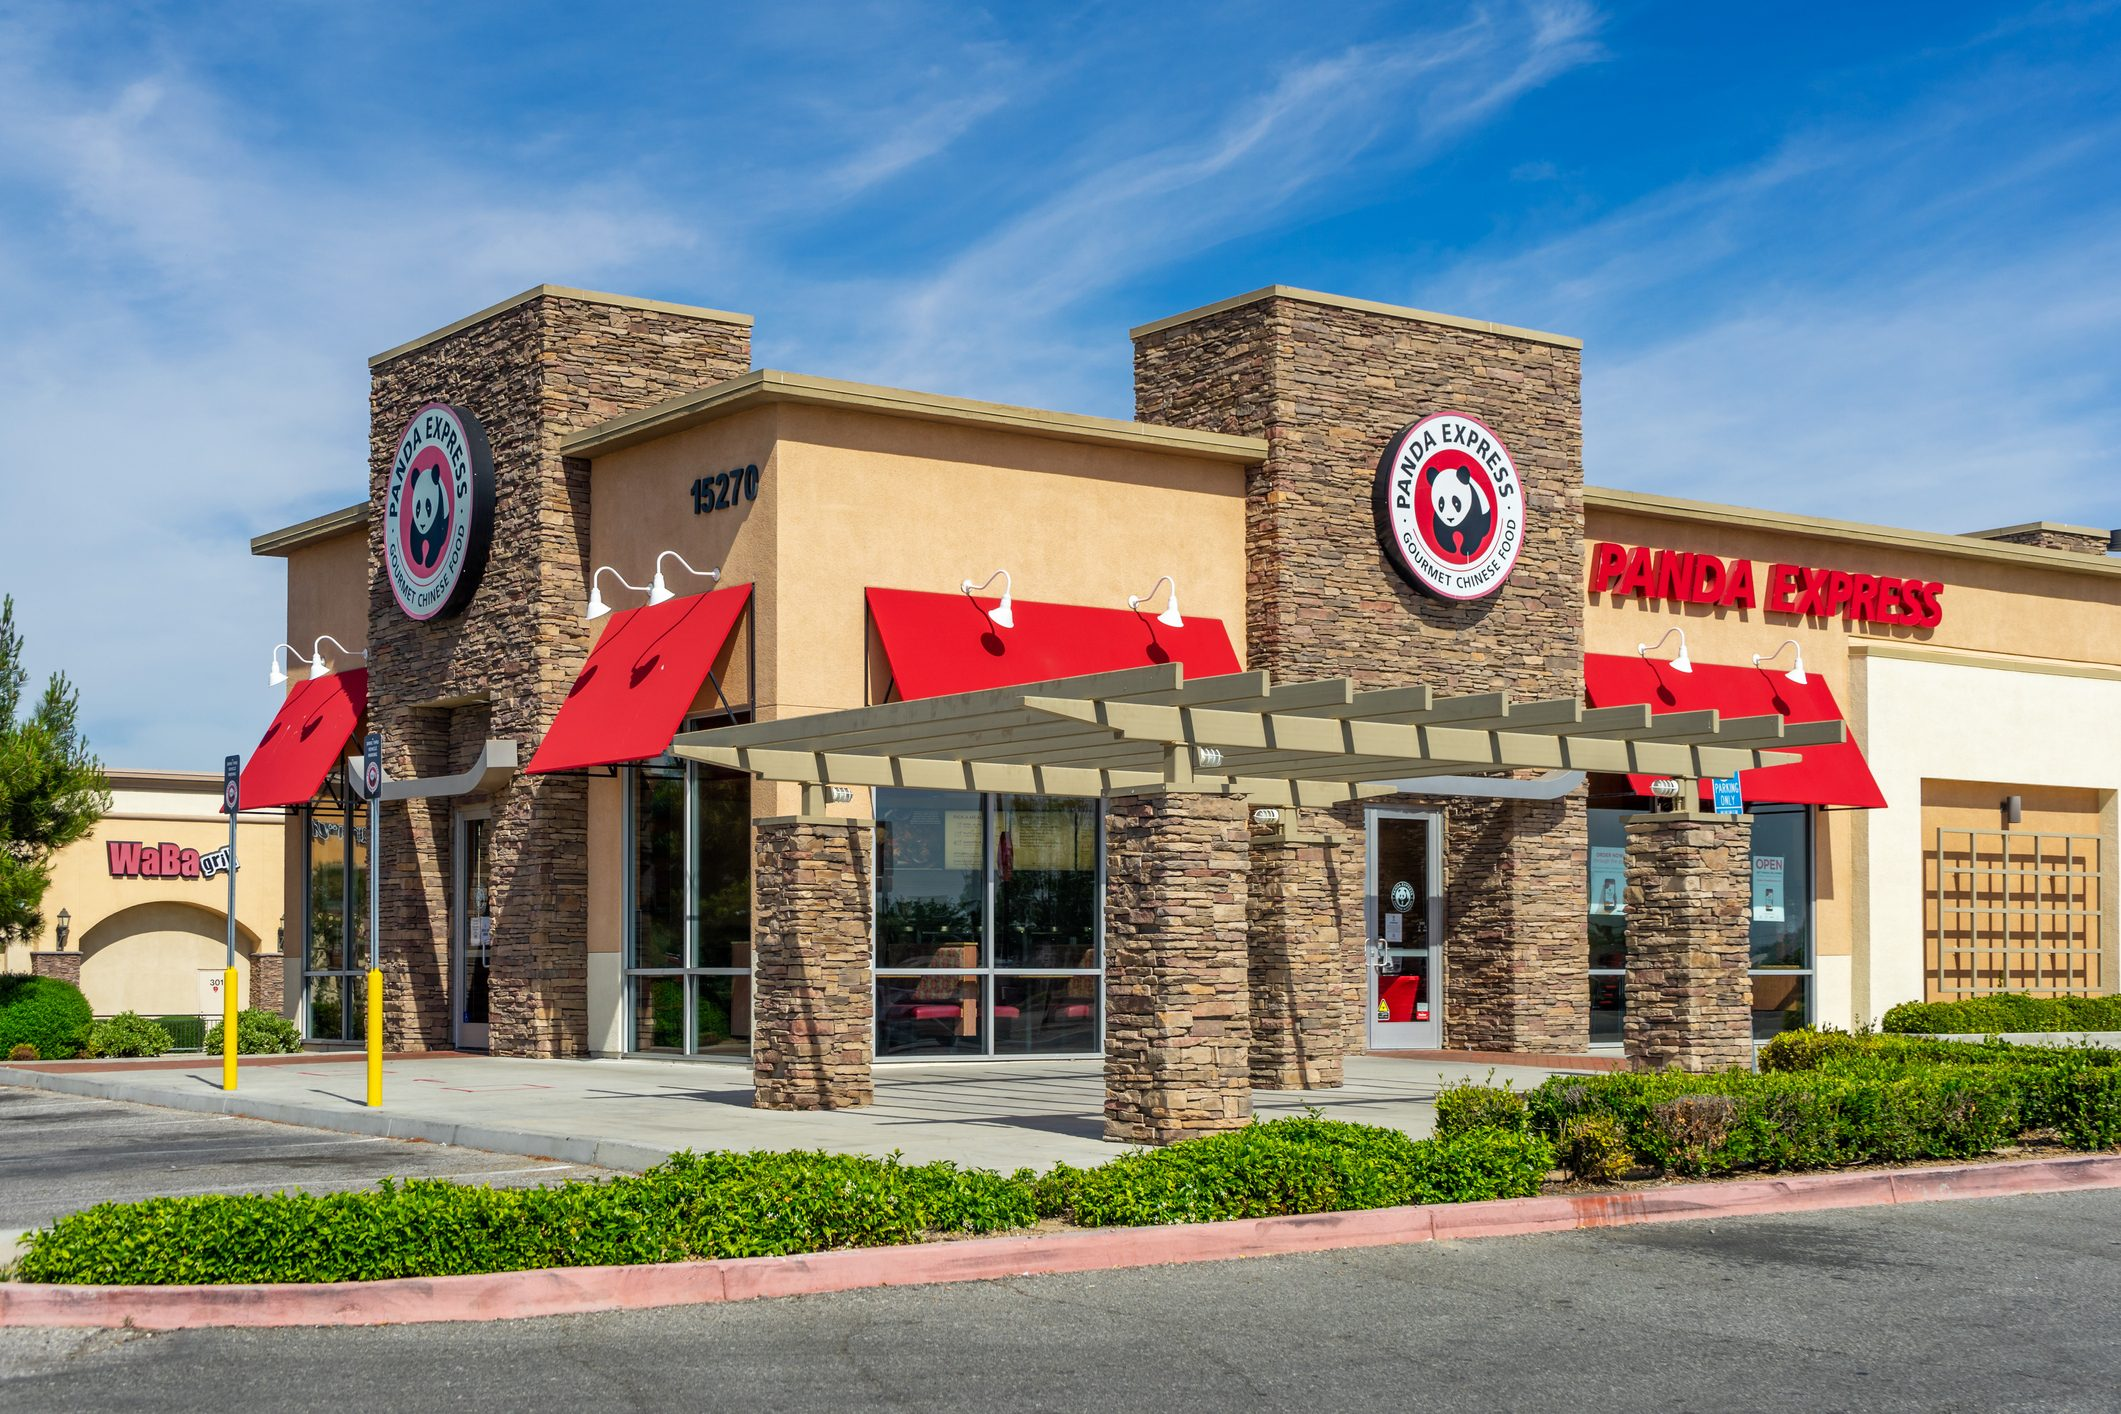 Panda Express restaurant in Victorville, California